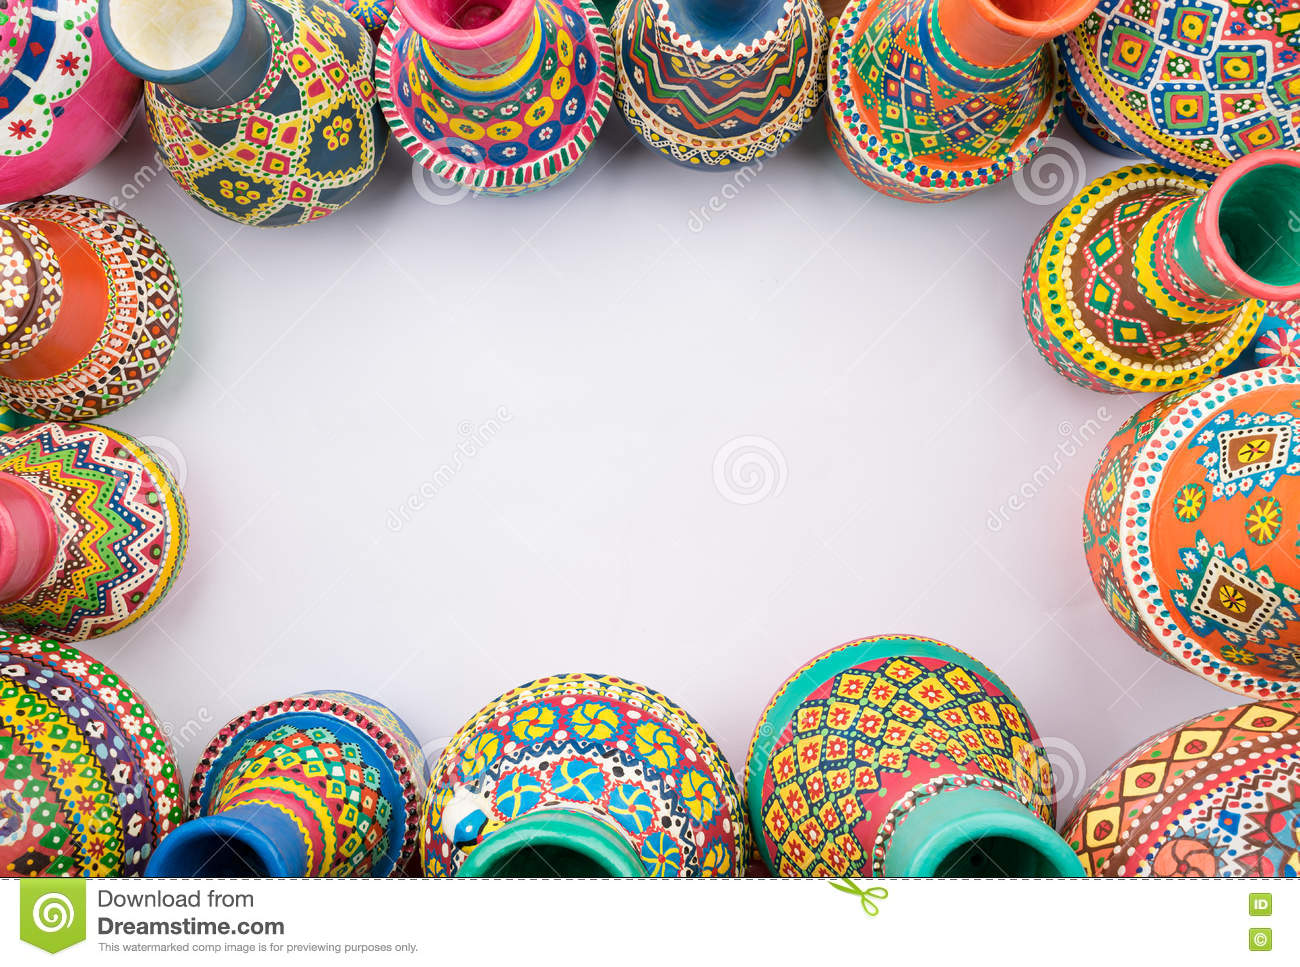 Frame Of Painted Pottery Vases On White Background Stock Image ...